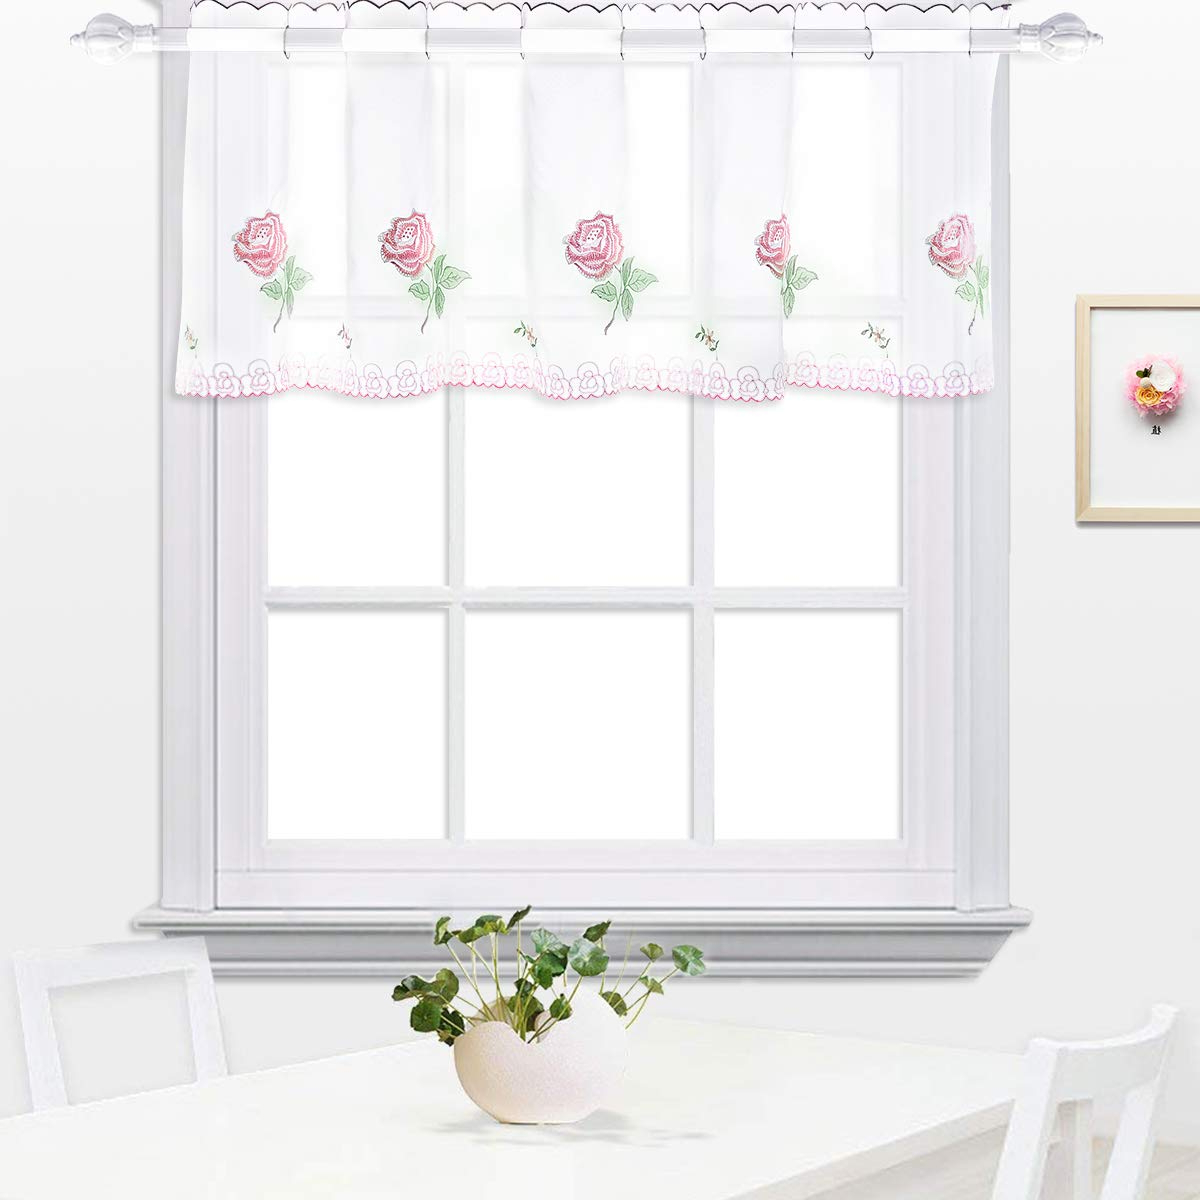 Embroidered Rod Pocket Kitchen Tiers Within Famous White Semi Sheer Valances With Embroidered Rose Kitchen Tier Curtain, Cafe  Curtain, Dining Room Curtain (Pink Flower, 18 X 59 Inches (45X150Cm)) (Gallery 20 of 20)